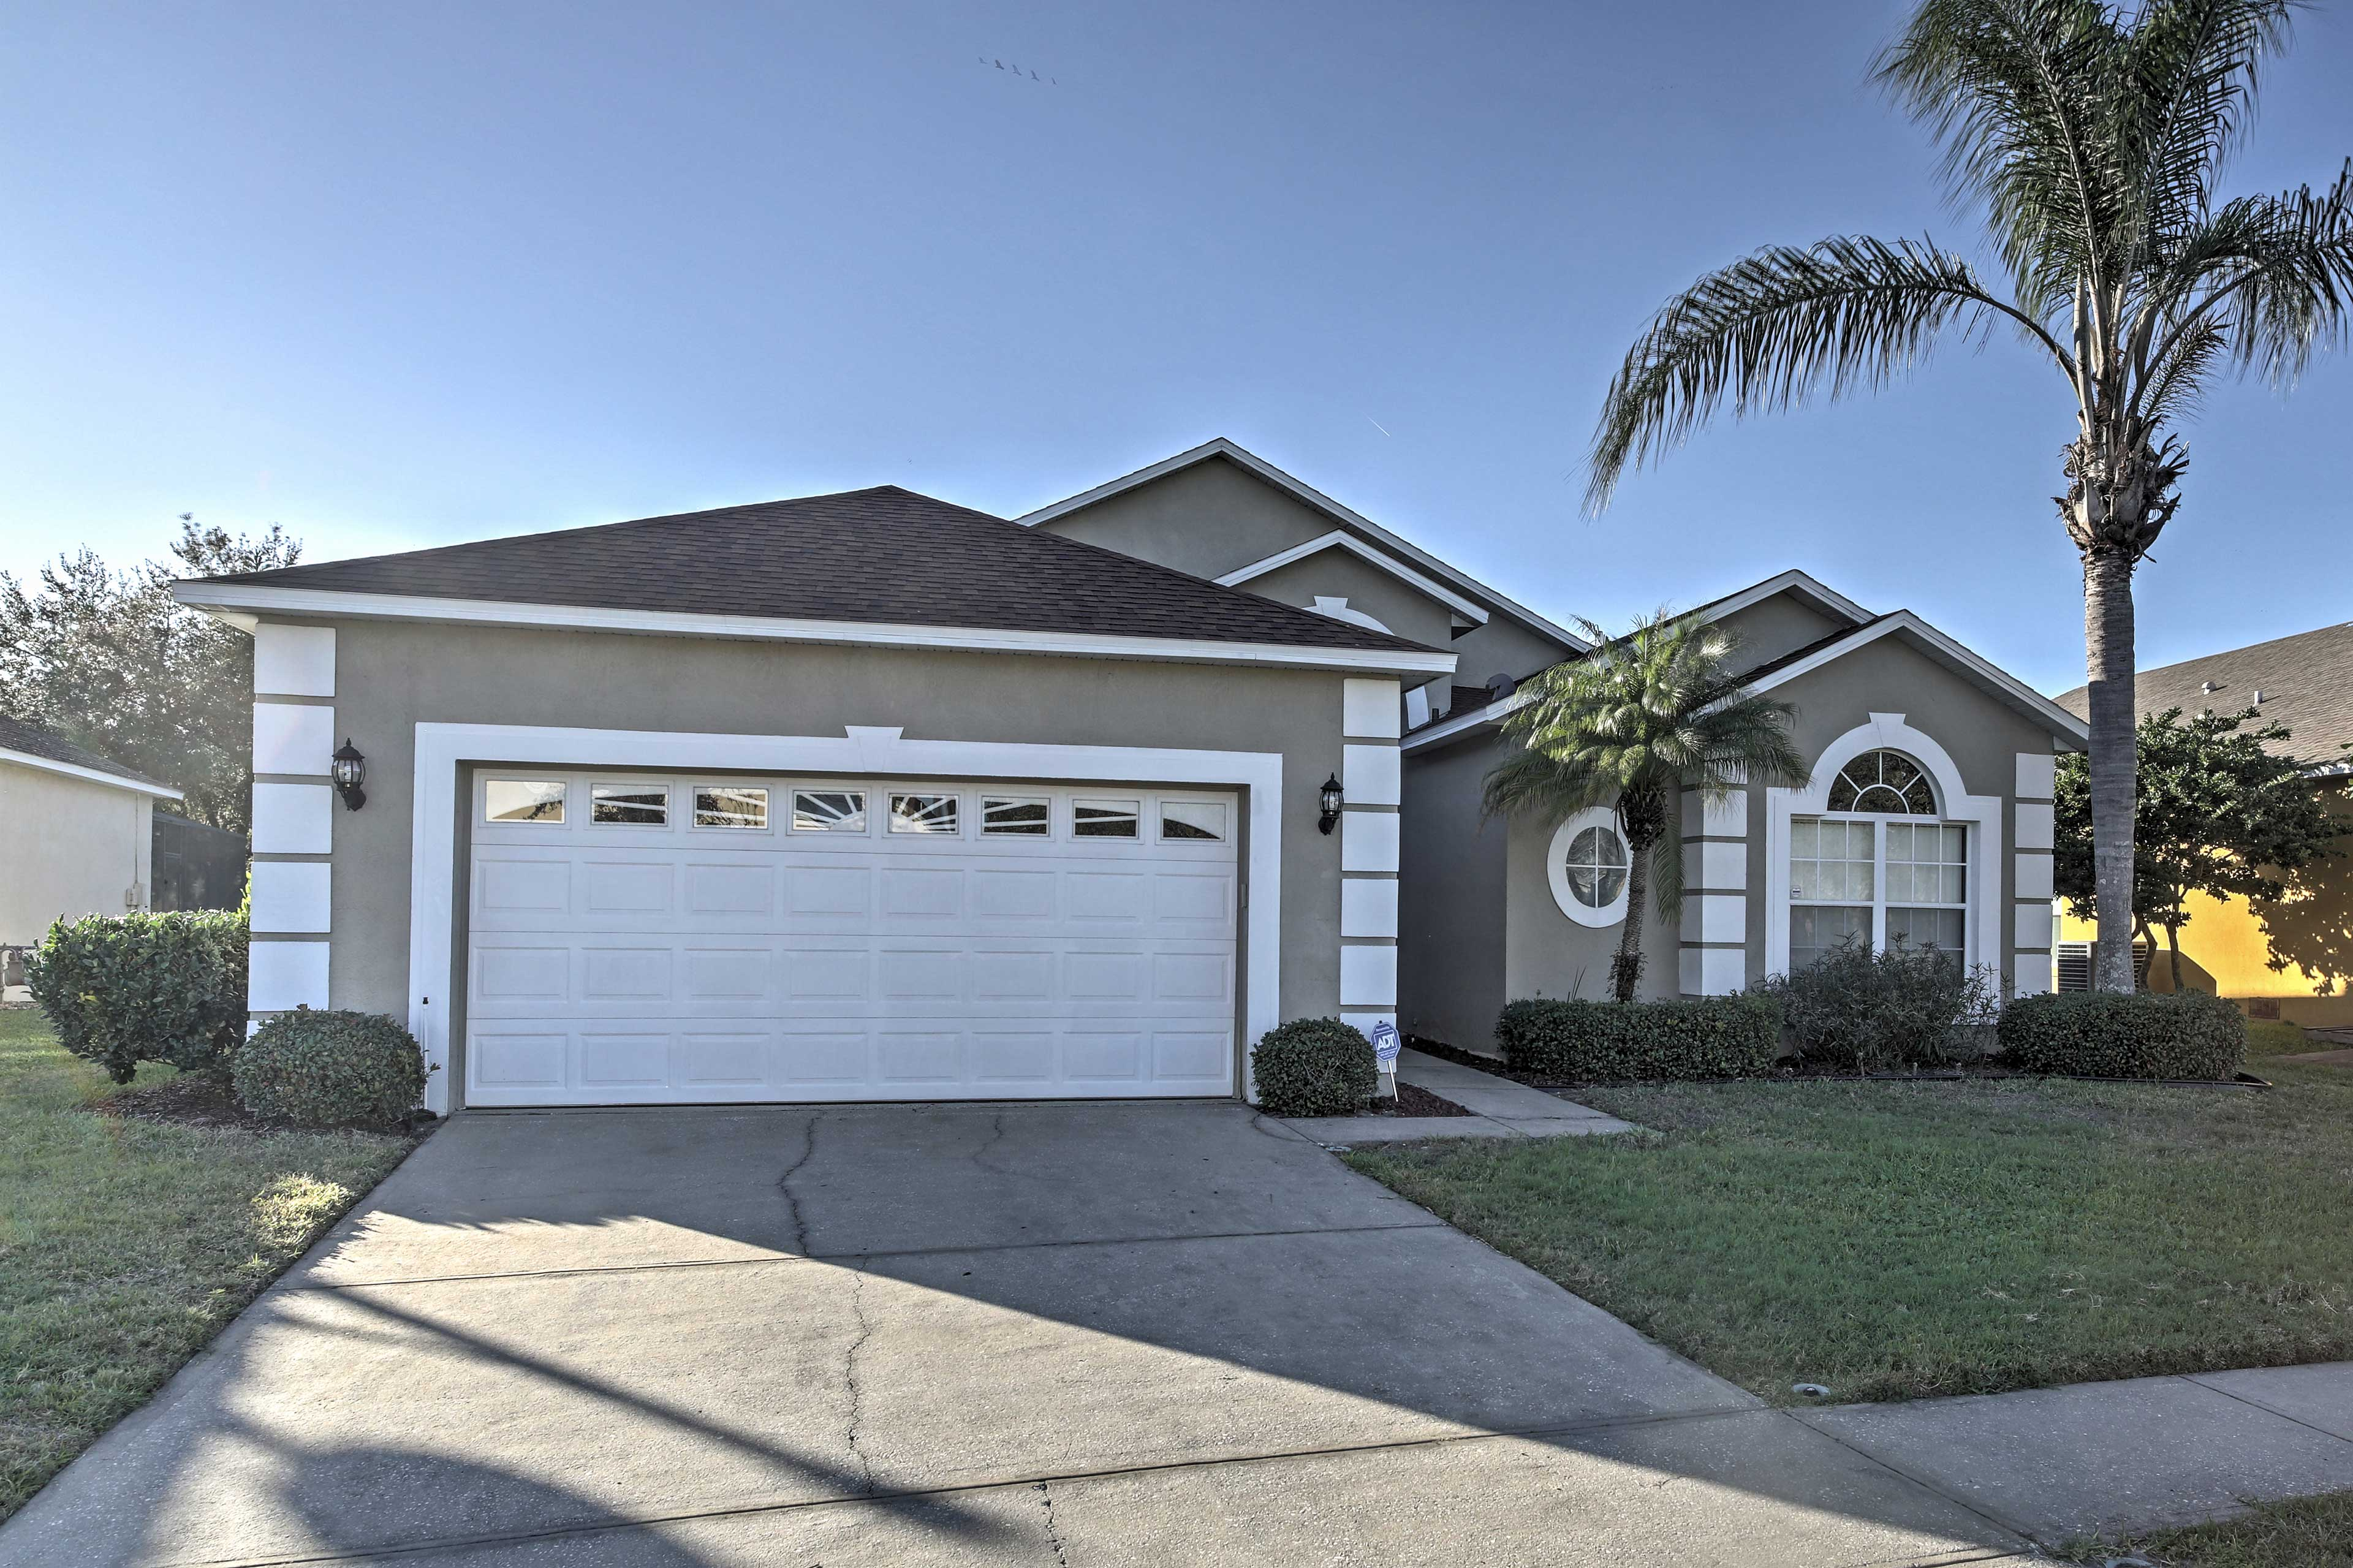 This 2,084 square foot home is ideal for friends, families, or couples.